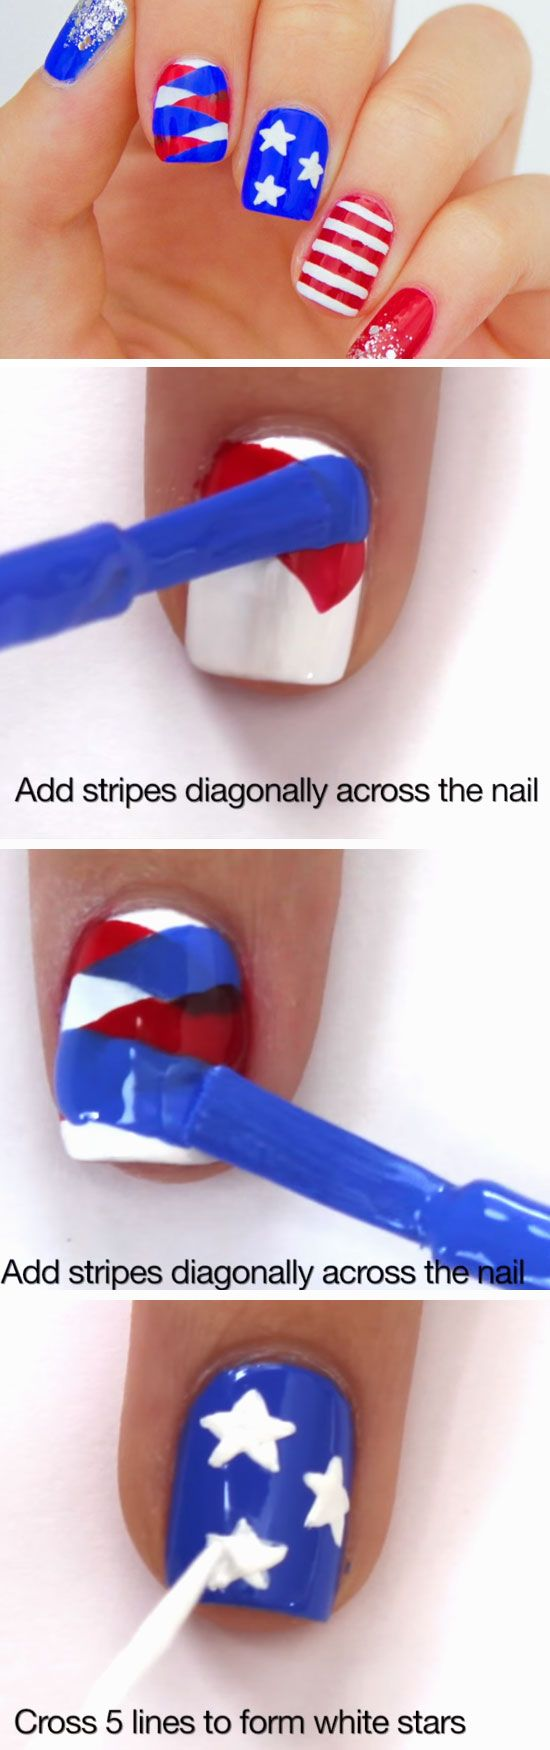 18 Amazing Fourth of July Nail Art Designs for Teens | Nageldesign ...